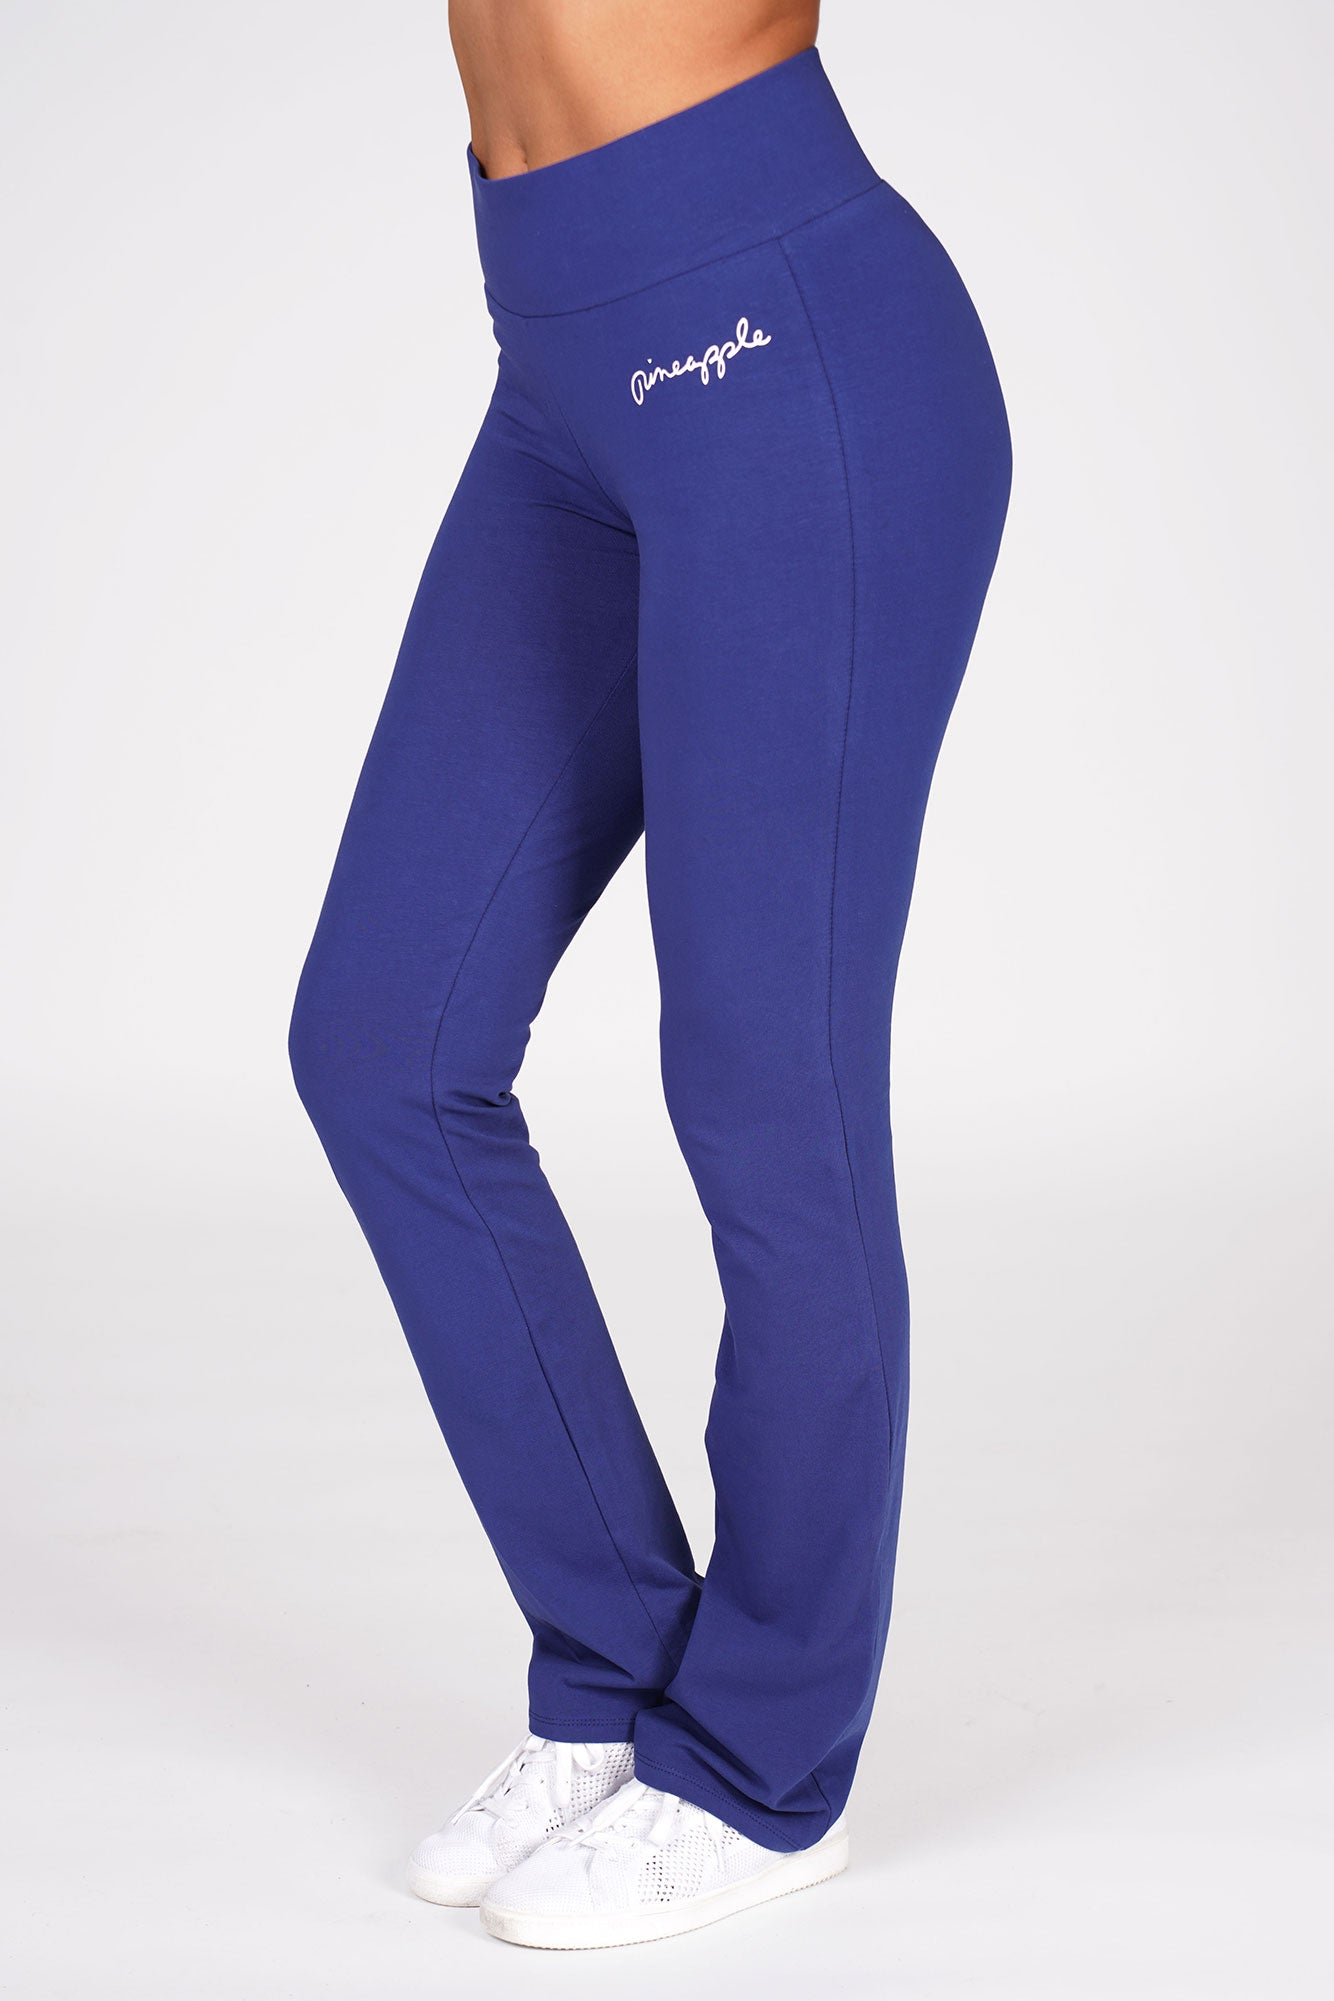 Woman wearing Pineapple Navy Slim Fit Jersey Trousers